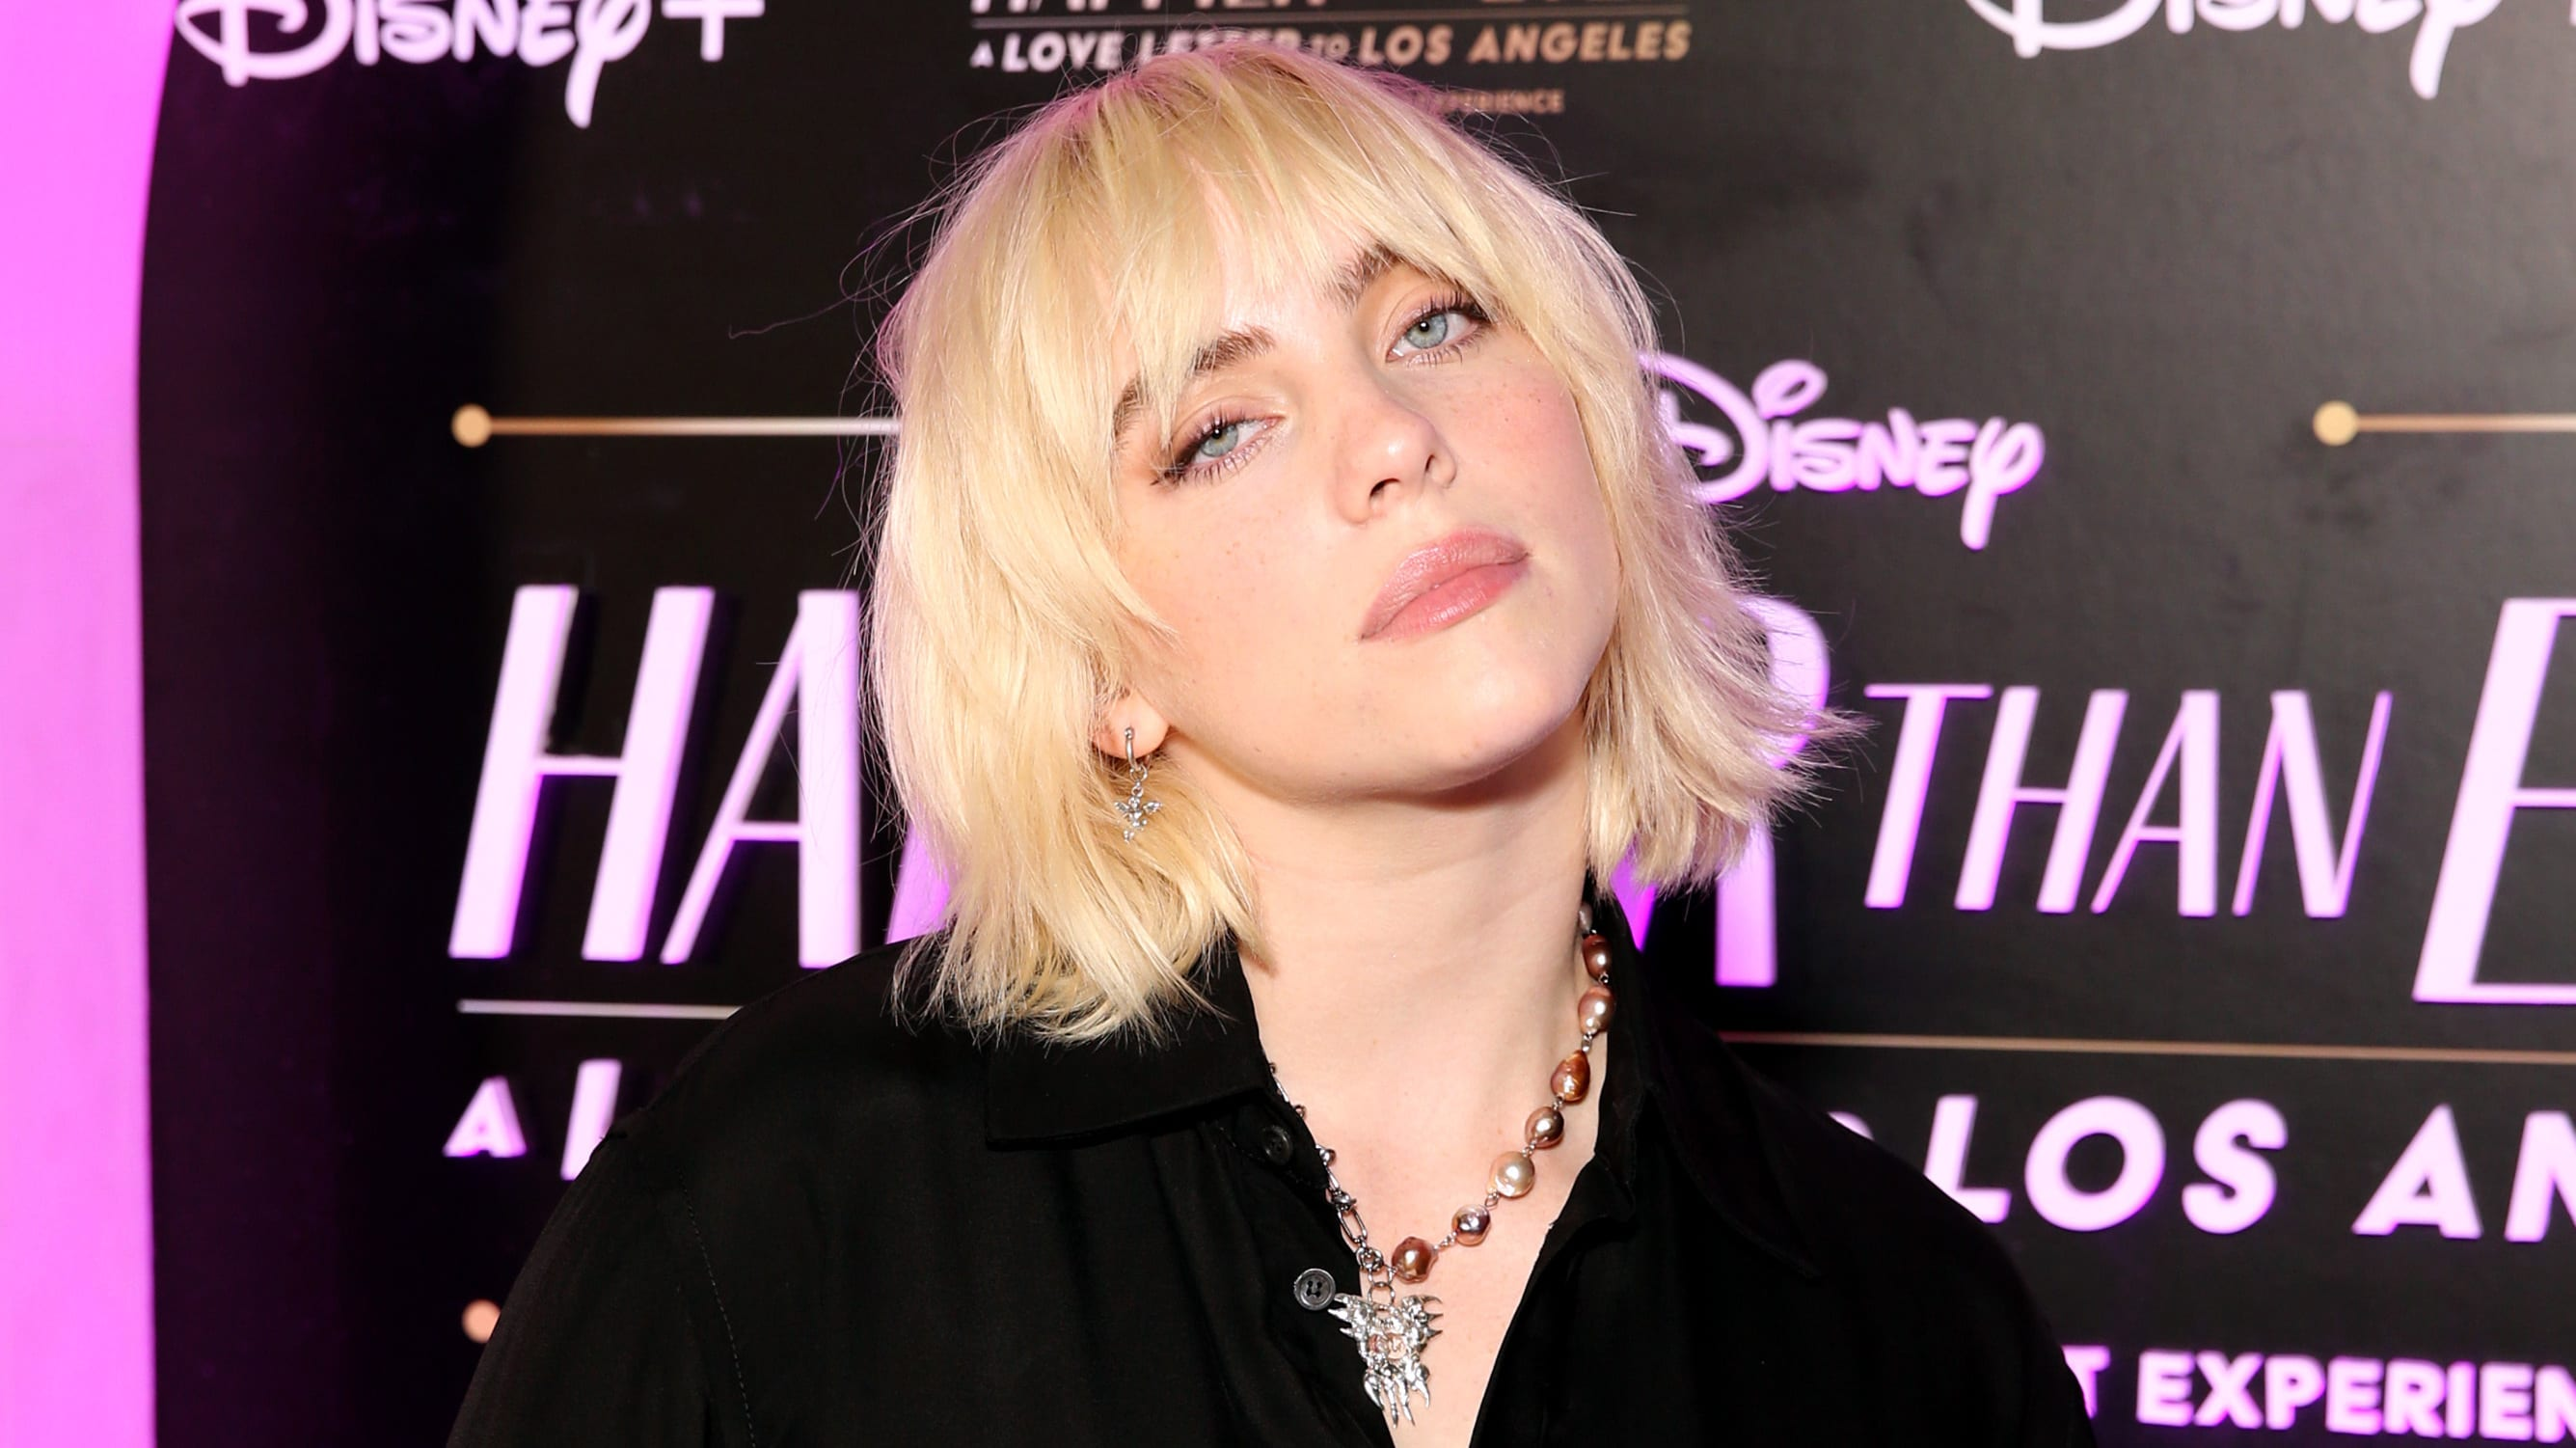 """LOS ANGELES, CALIFORNIA - AUGUST 30: Billie Eilish attends """"Happier Than Ever: A Love Letter To Los Angeles"""" Worldwide Premiere at The Grove on August 30, 2021 in Los Angeles, California. (Photo by Jesse Grant/Getty Images for Disney)"""